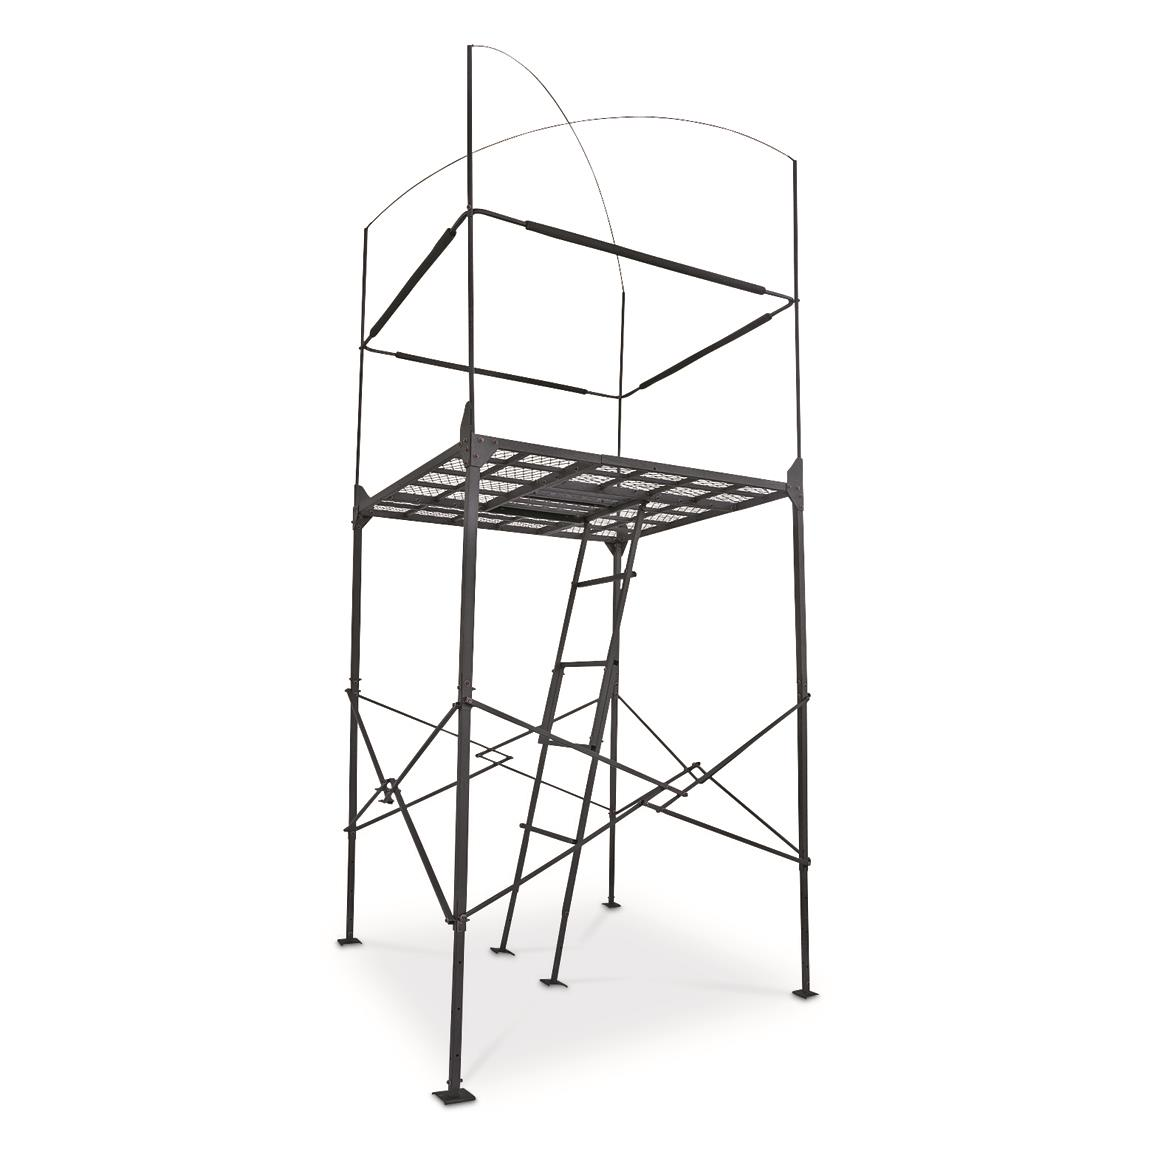 primal tree stands 7 homestead quad pod stand with enclosure Blind Dog Equipment primal tree stands 7 homestead quad pod stand with enclosure hunting blind